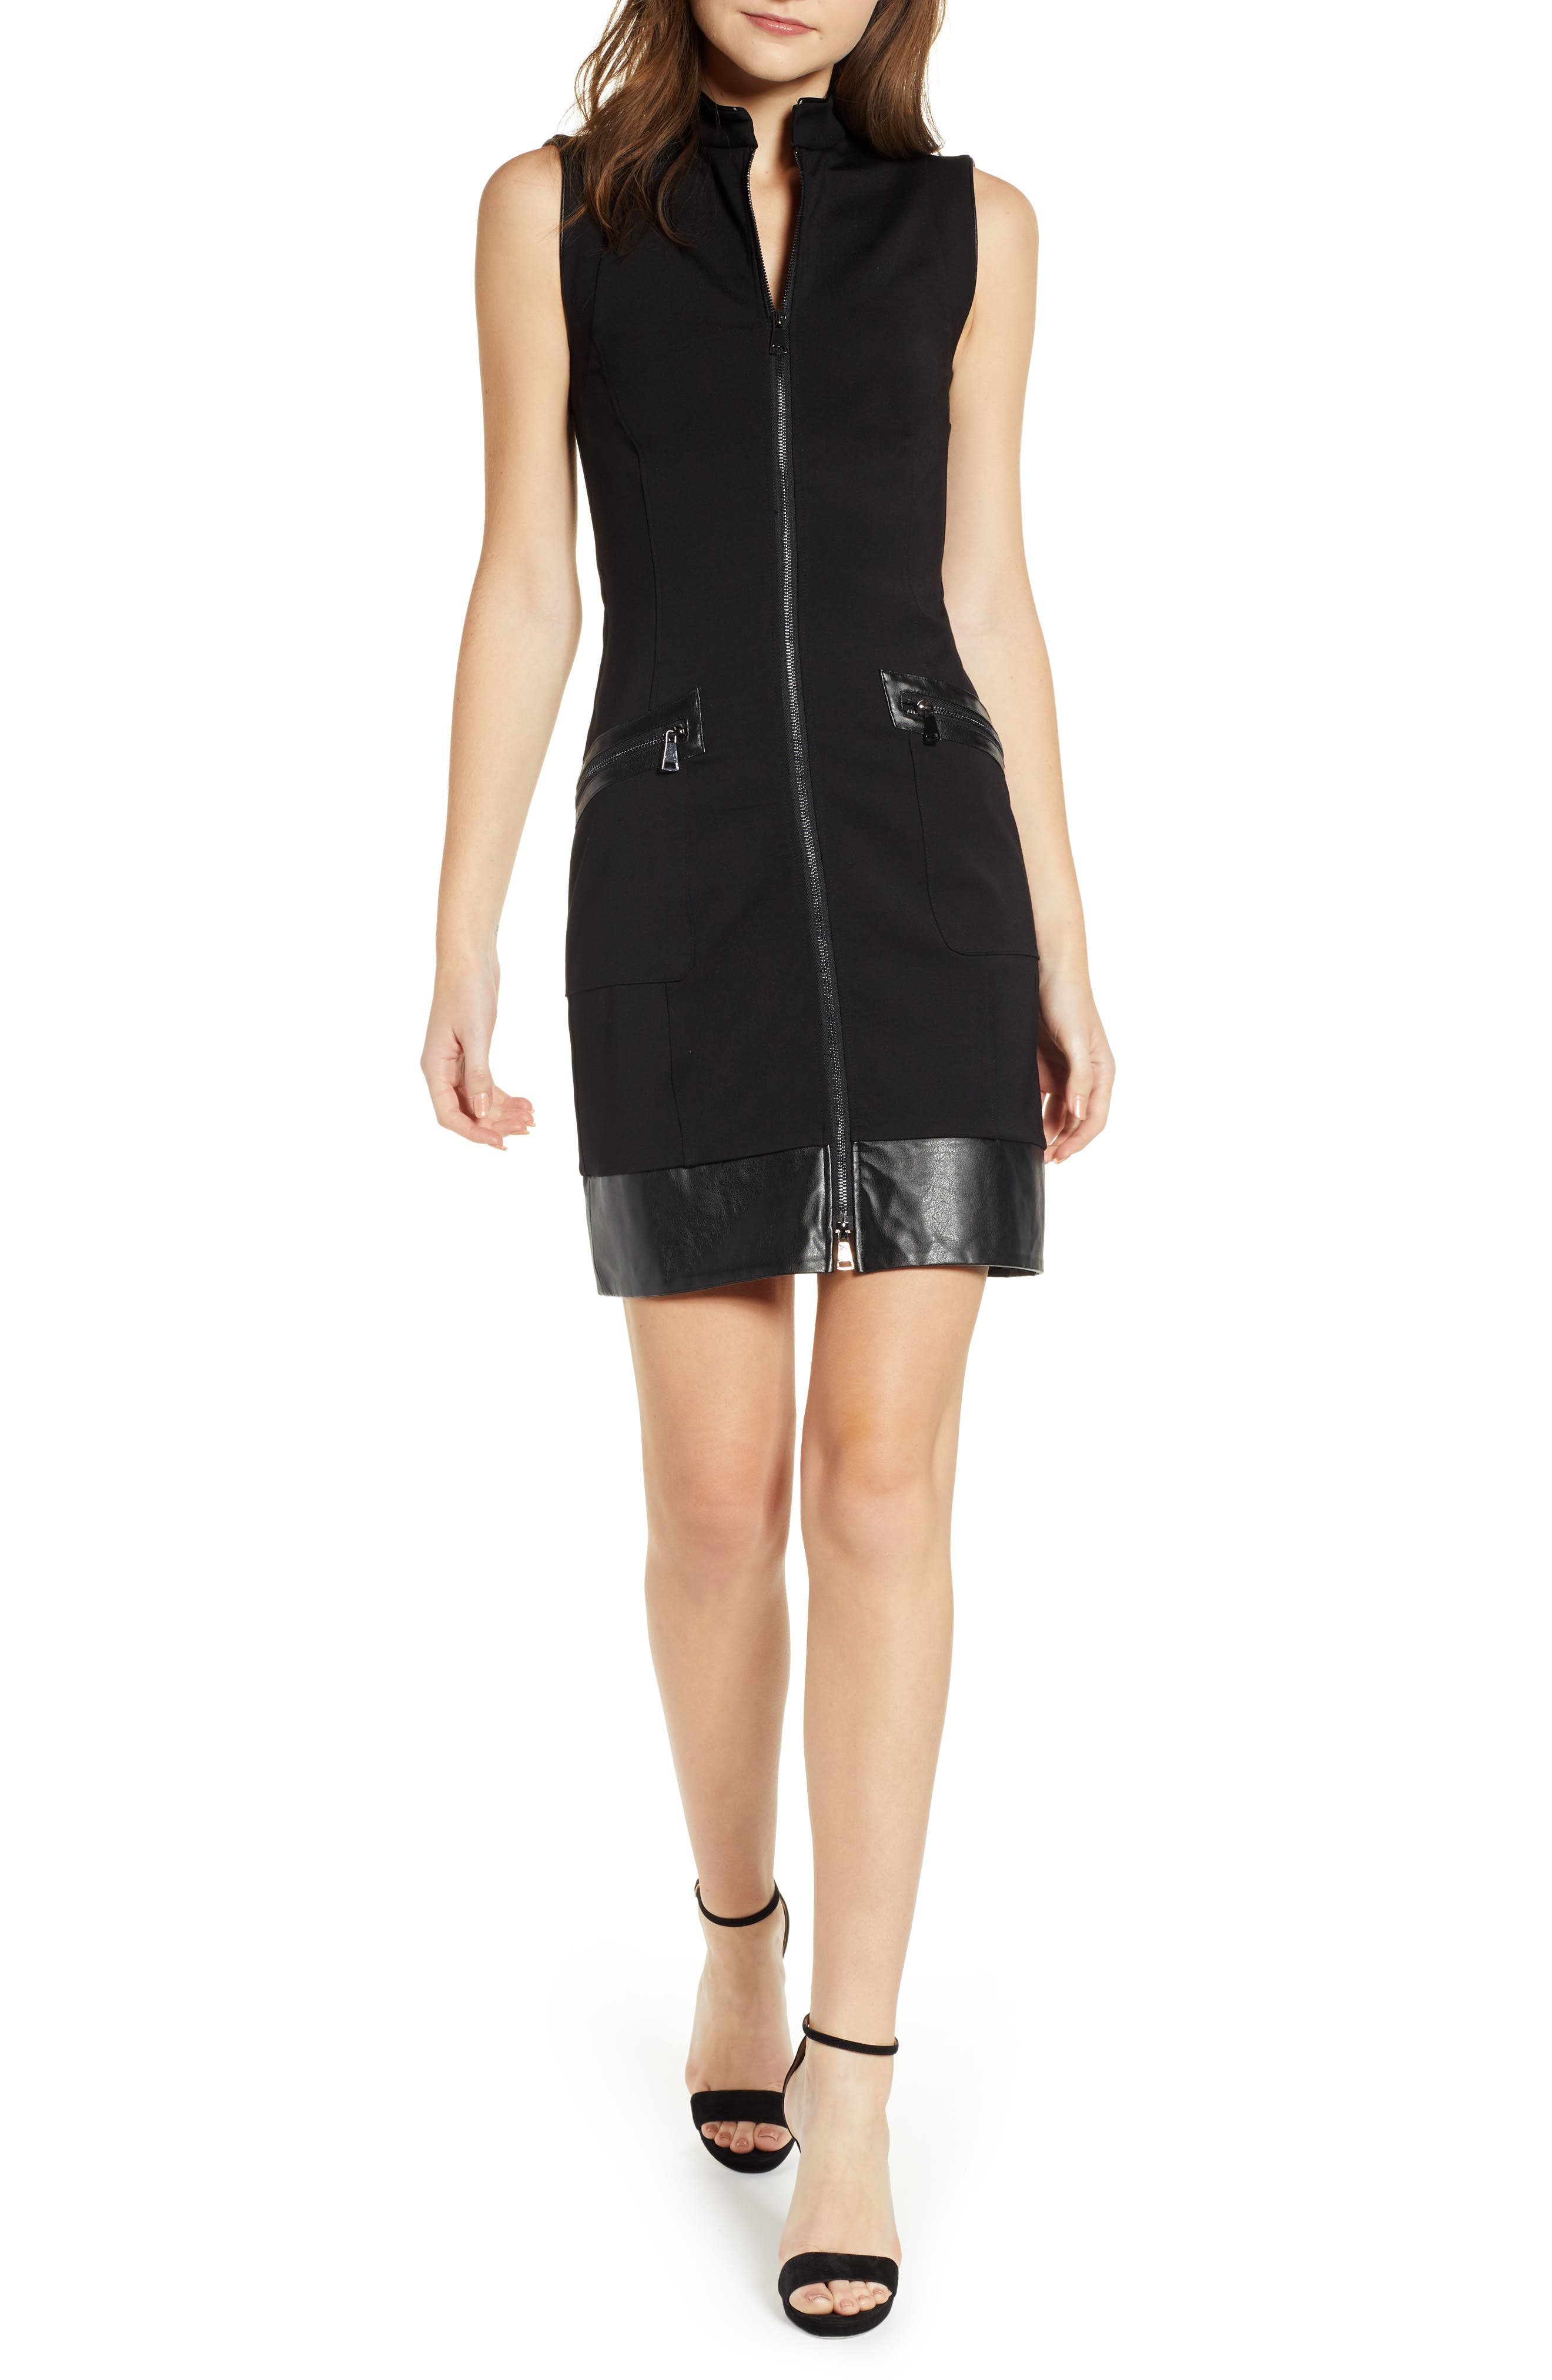 Ponte &Amp; Faux Leather Dress by Sentimental Ny